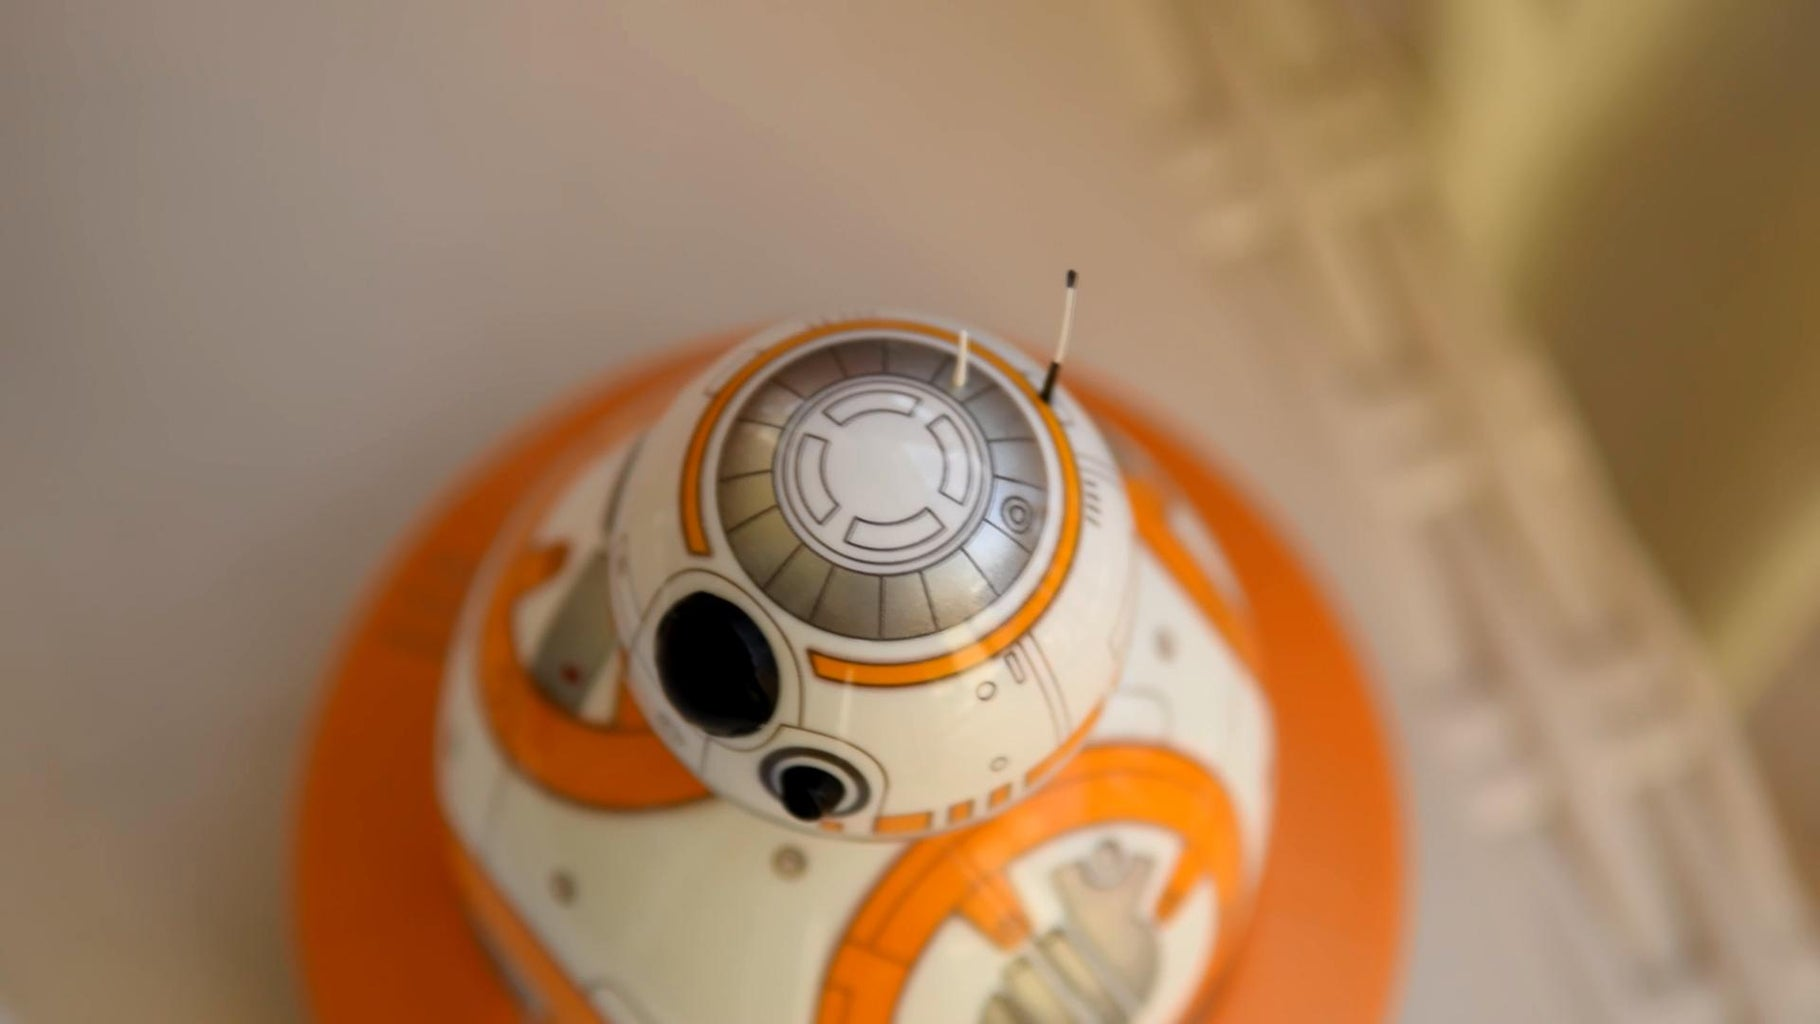 Draw the Details on BB8's Head